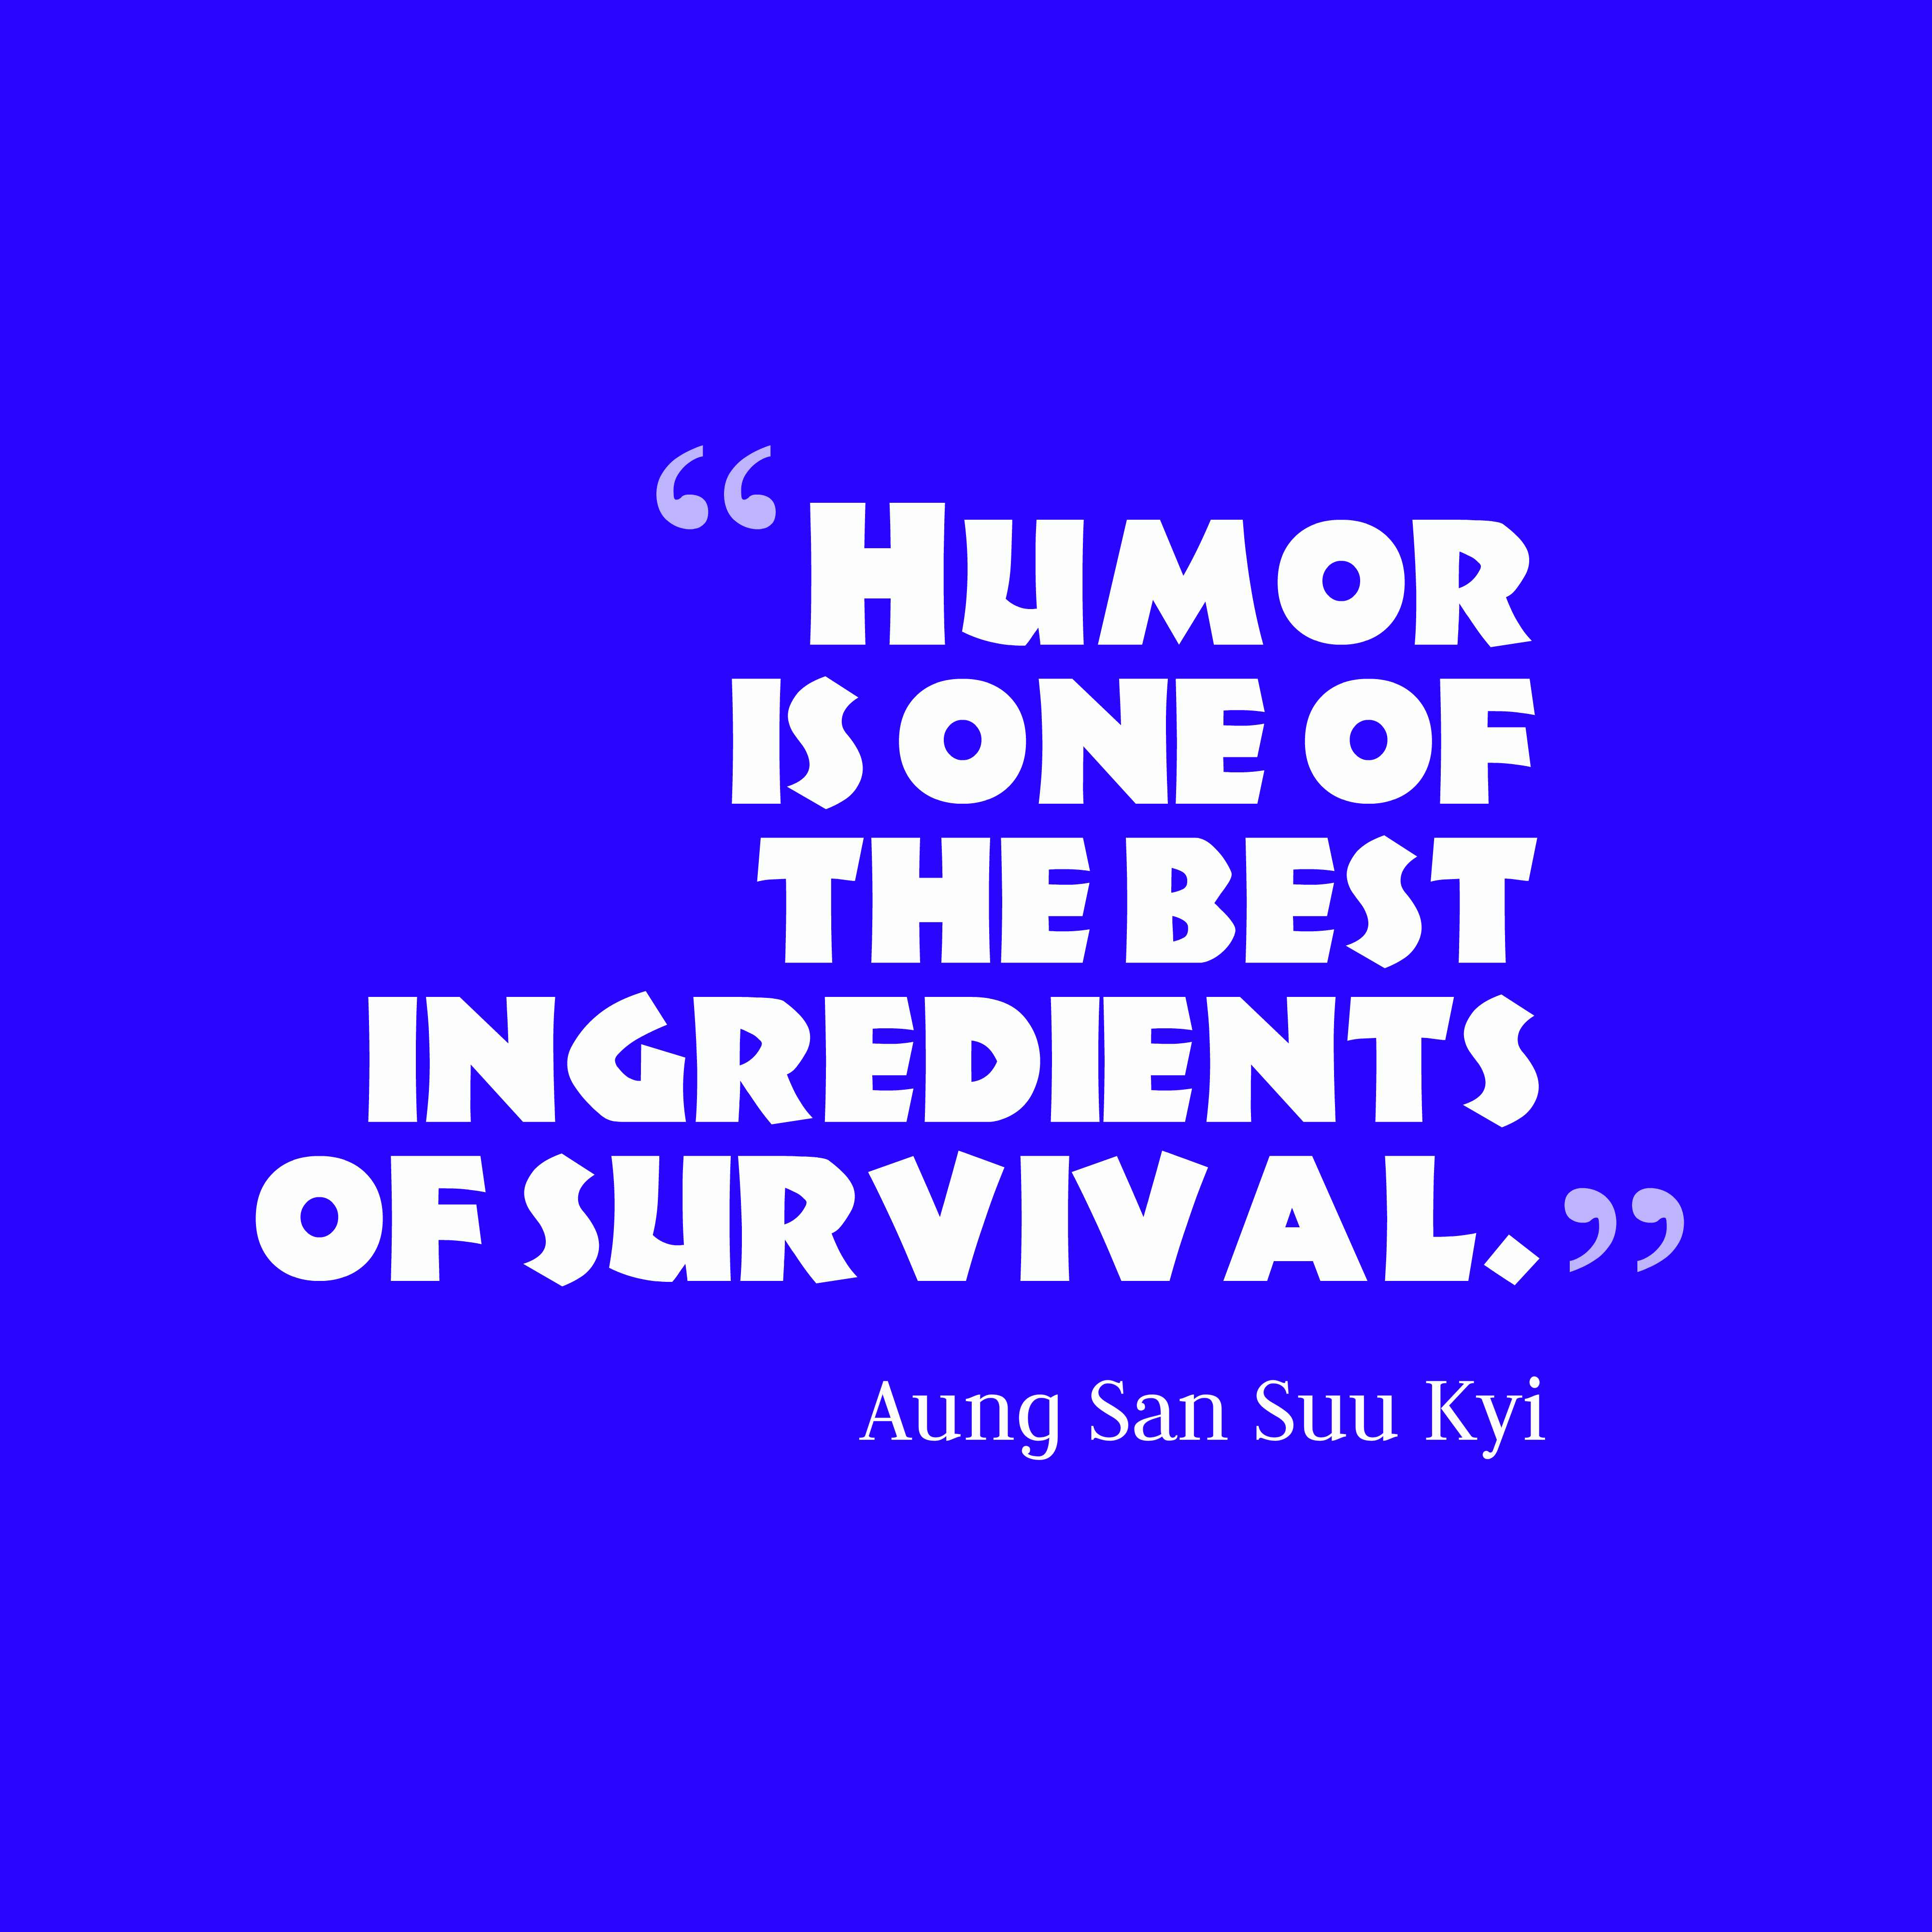 Quotes About Humor: 32 Best Humor Quotes Images